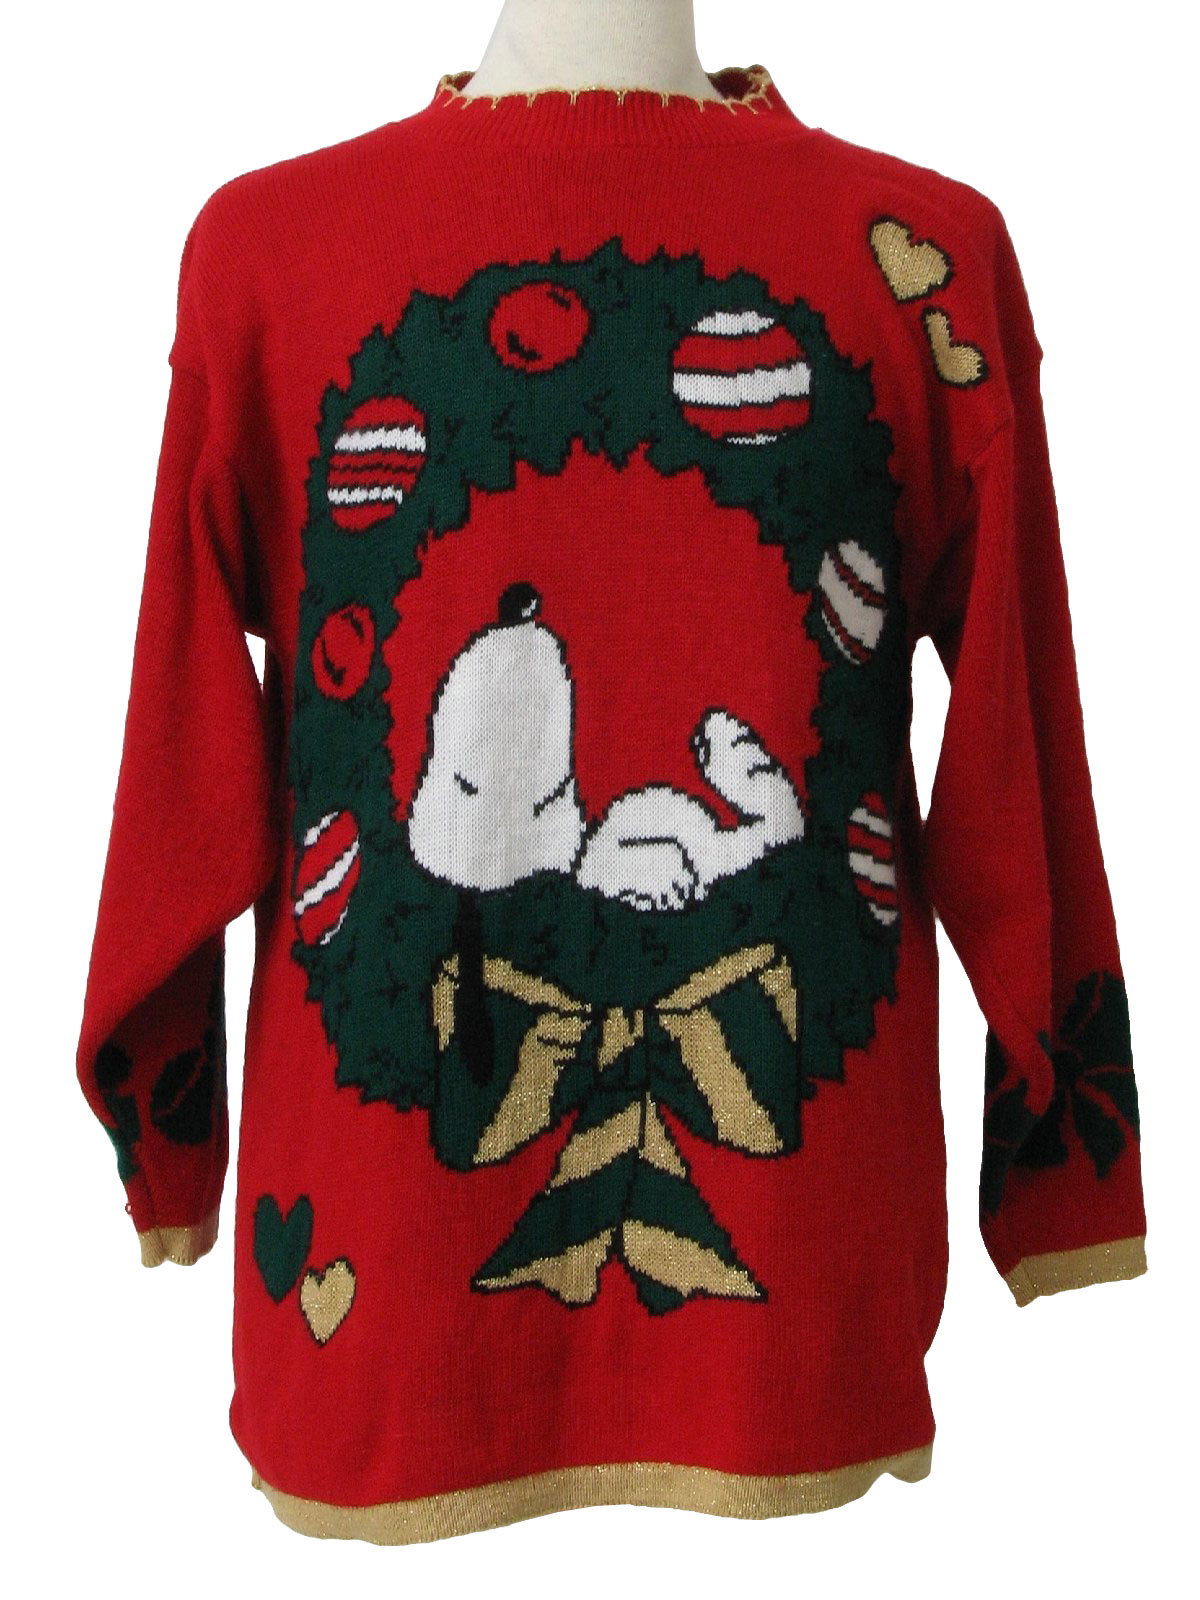 Target Big & Tall Ugly Christmas Sweaters – sizes to 5X Even major retailers like Target have gotten in on the action with their own ugly sweater section. Here you'll find light up sweaters, festive animal sweaters, and some generally gaudy options for your holiday party.